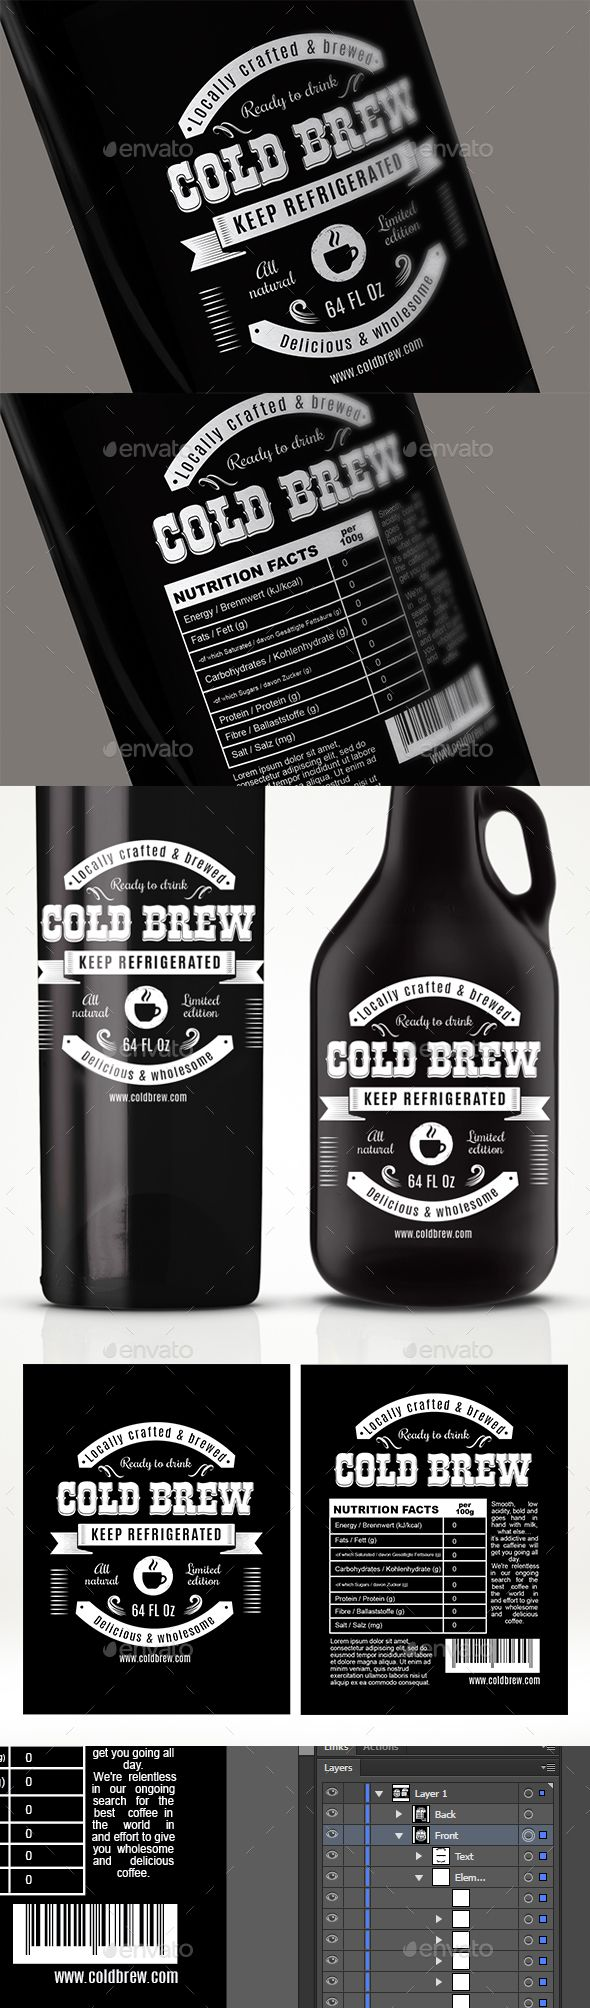 Cold Brew Label — PSD Template #modern #fresh • Download ➝ https ...